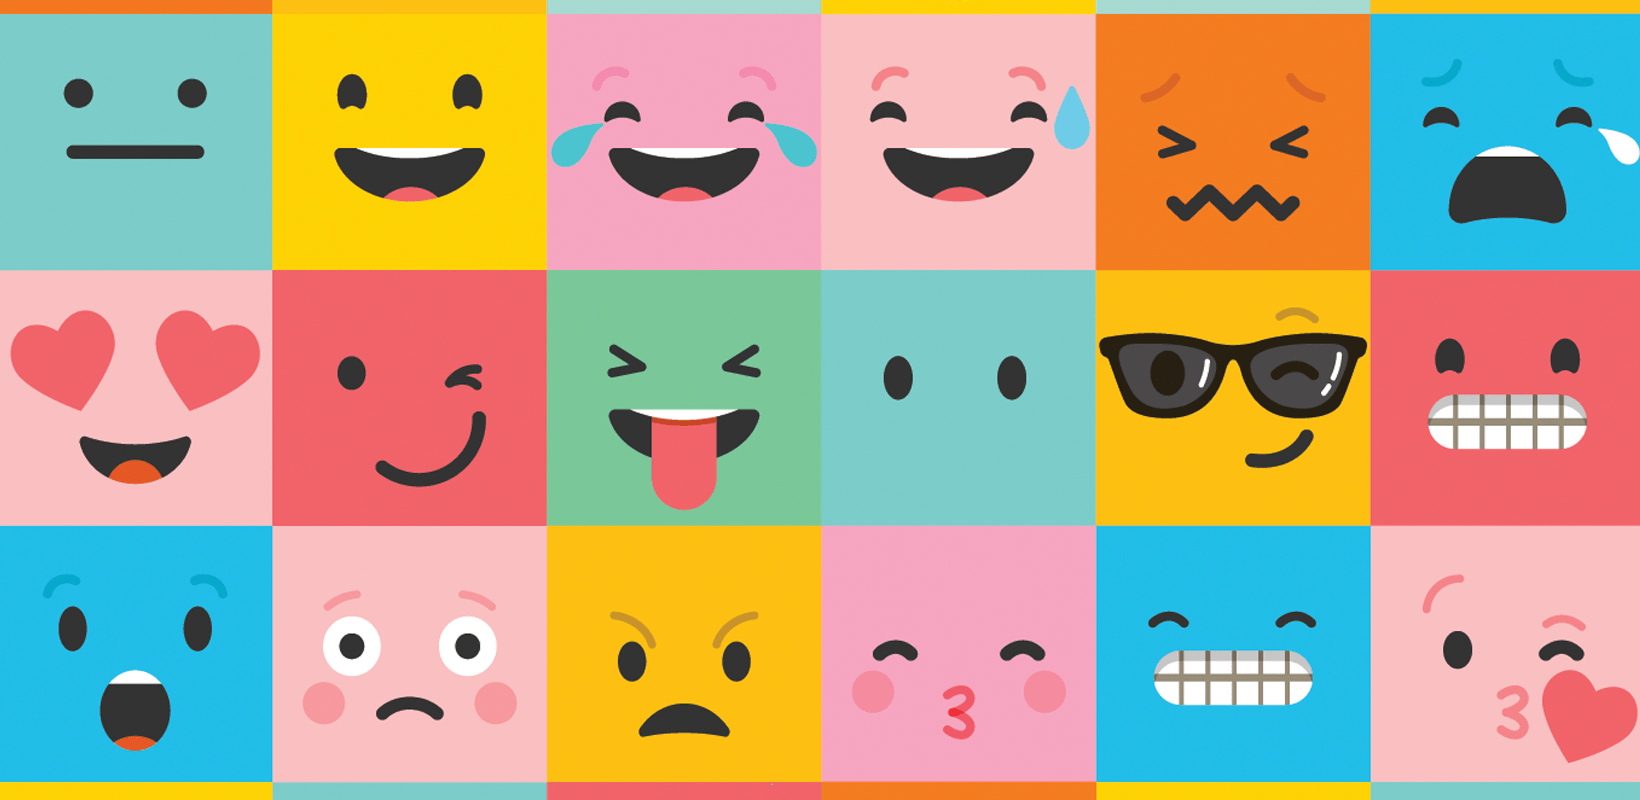 emoticons with different reactions to storytelling